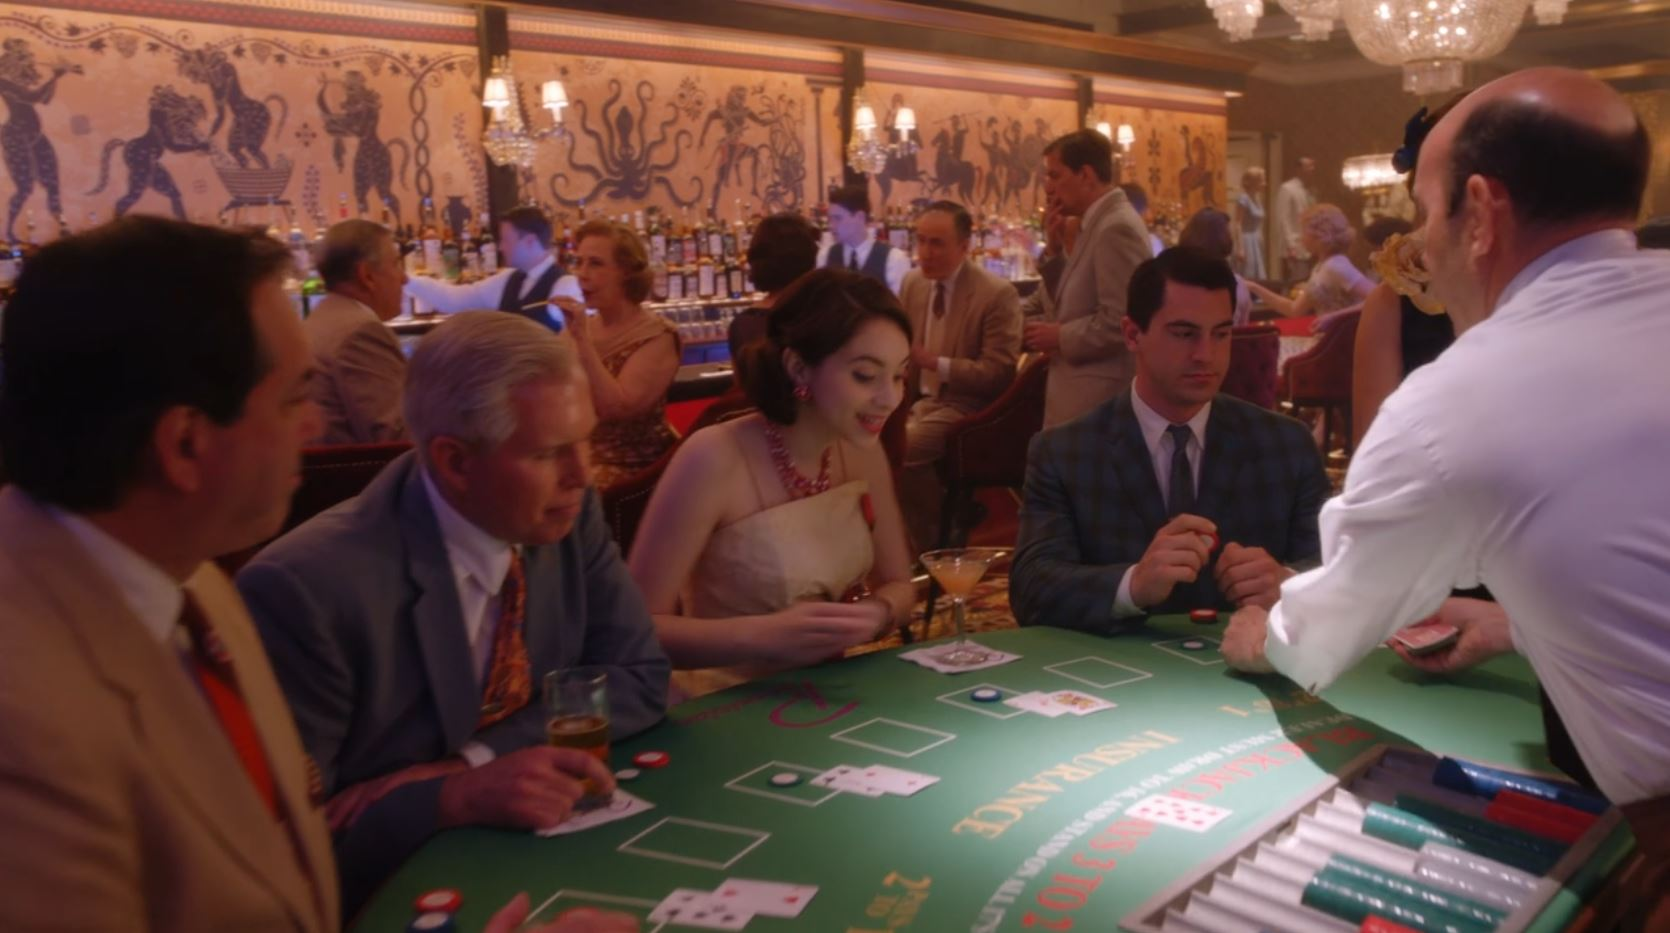 """Brianna Ward as a Casino Patron in """"The Marvelous Mrs. Maisel"""", Season 3, Episode 3"""